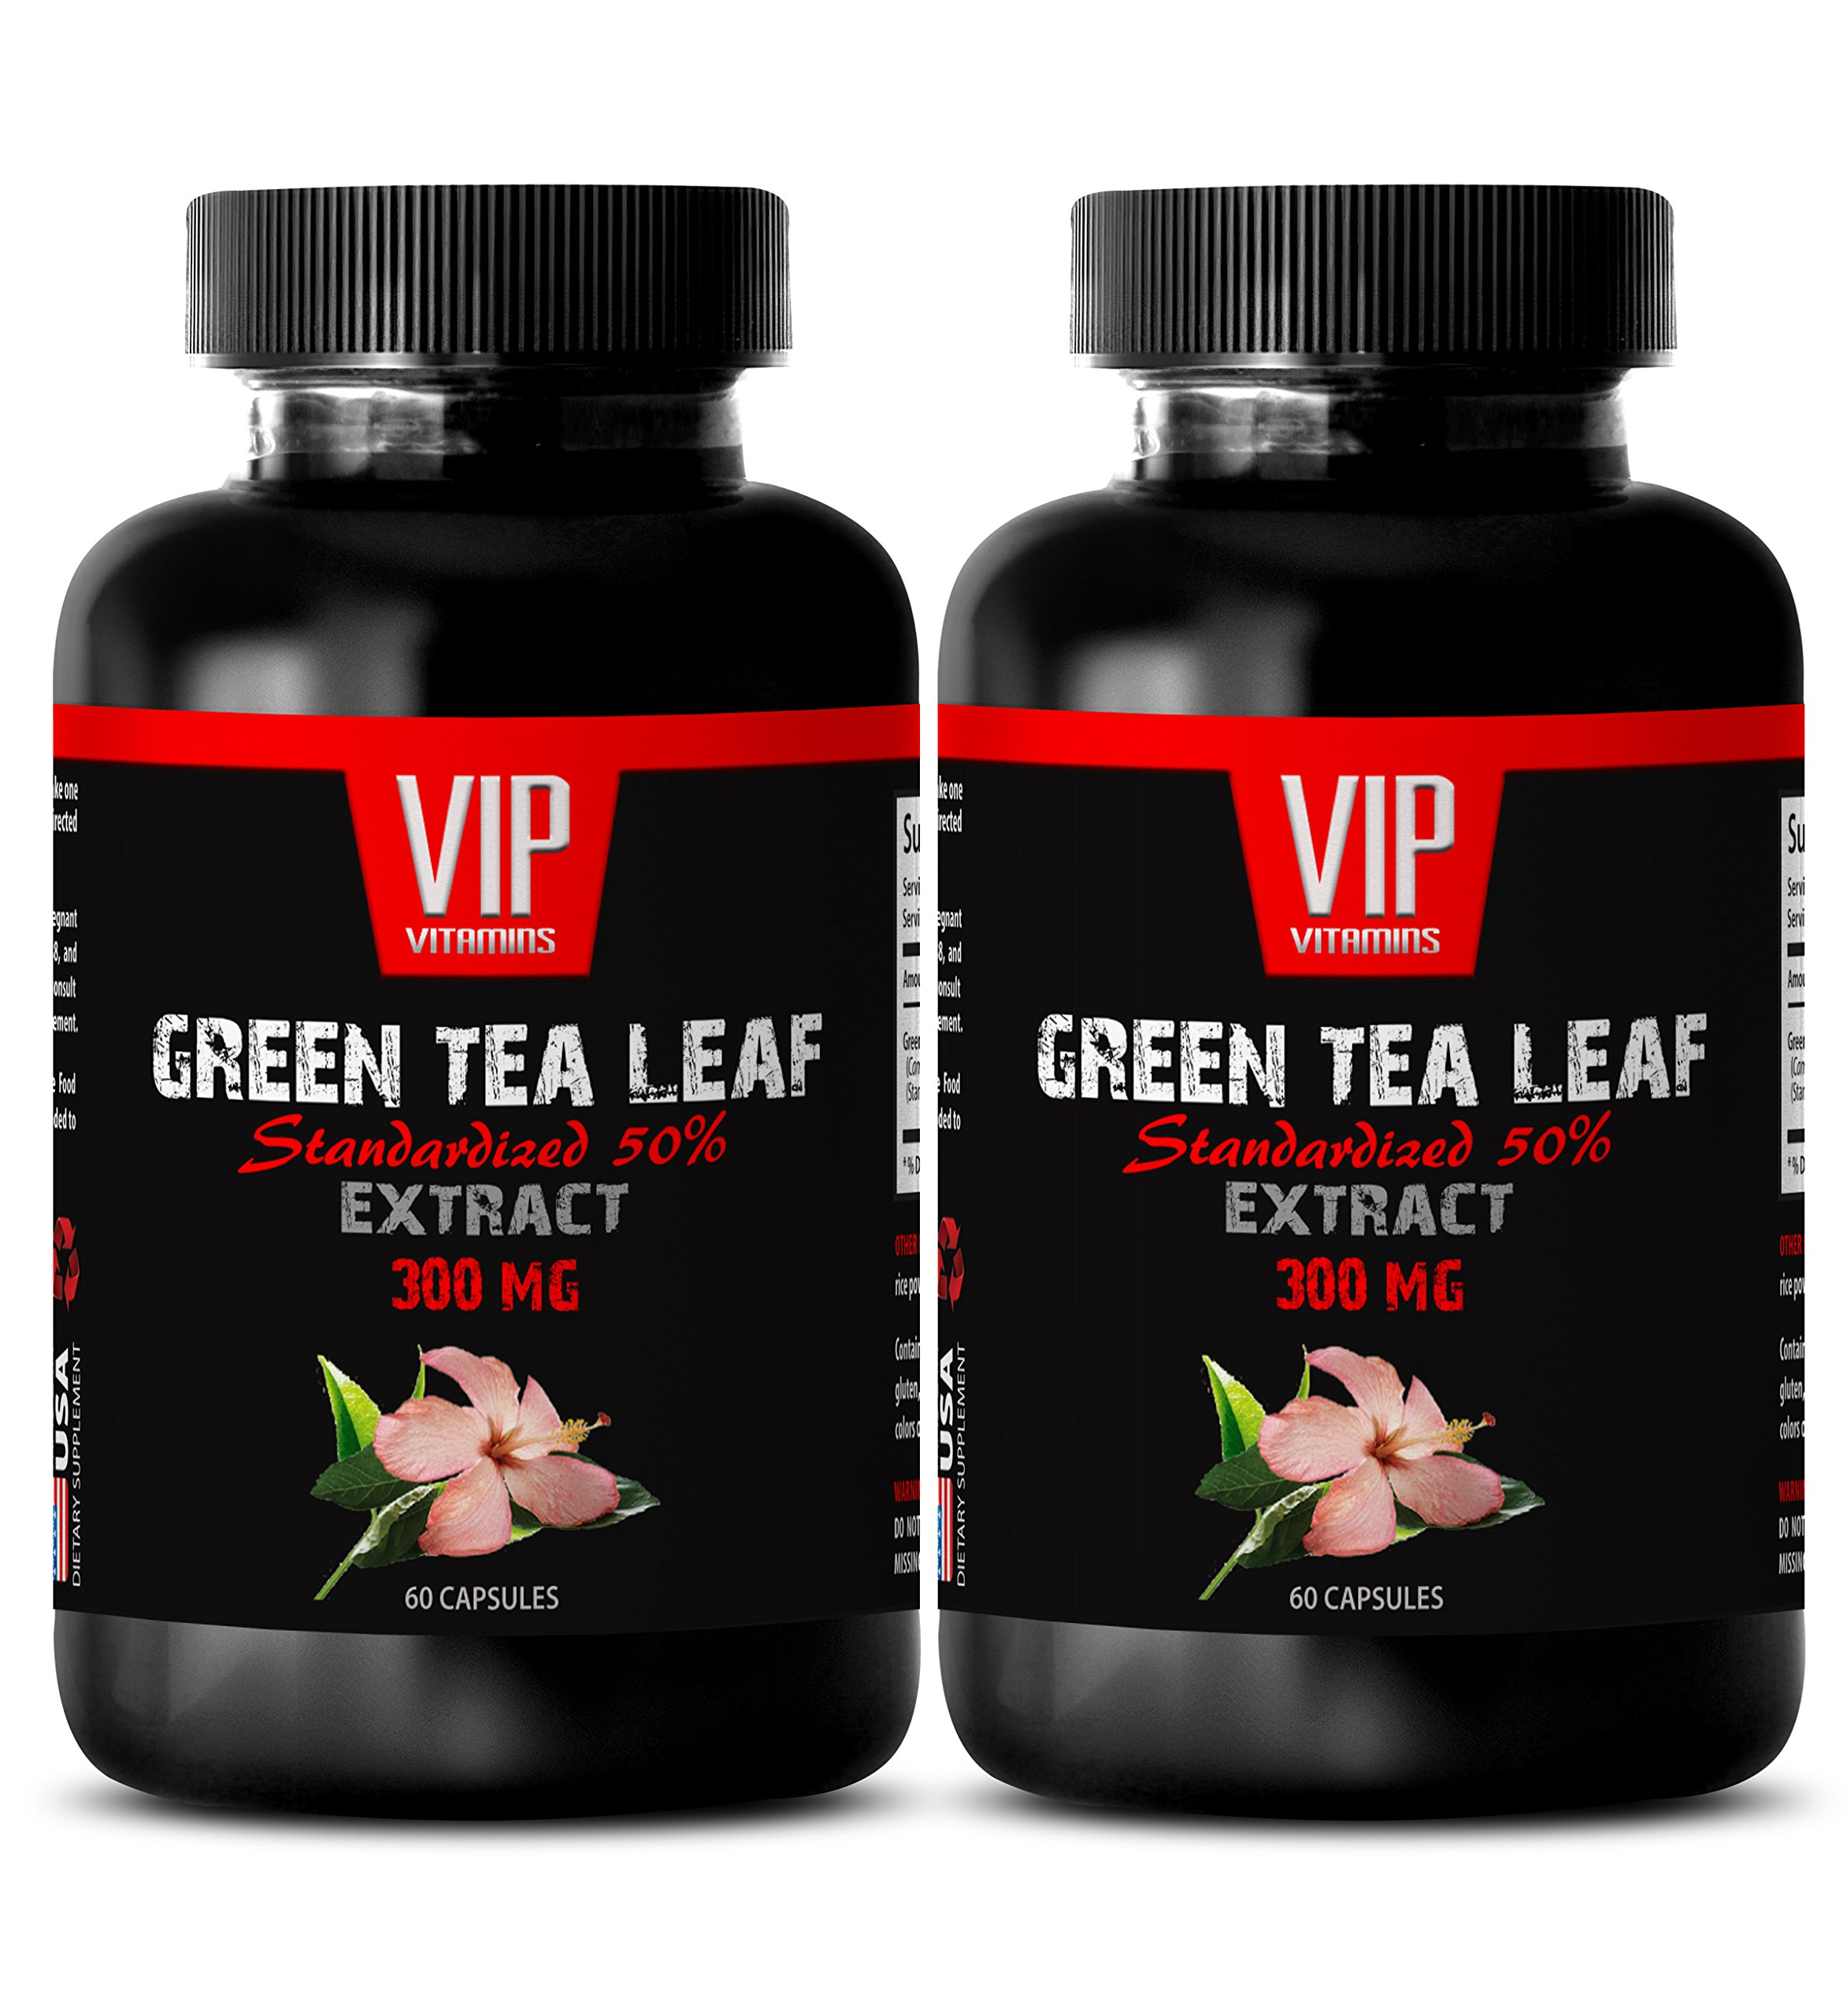 Weight loss vitamins for women - GREEN TEA LEAF EXTRACT - Green tea extract pills for weight loss - 2 Bottles 120 Capsules